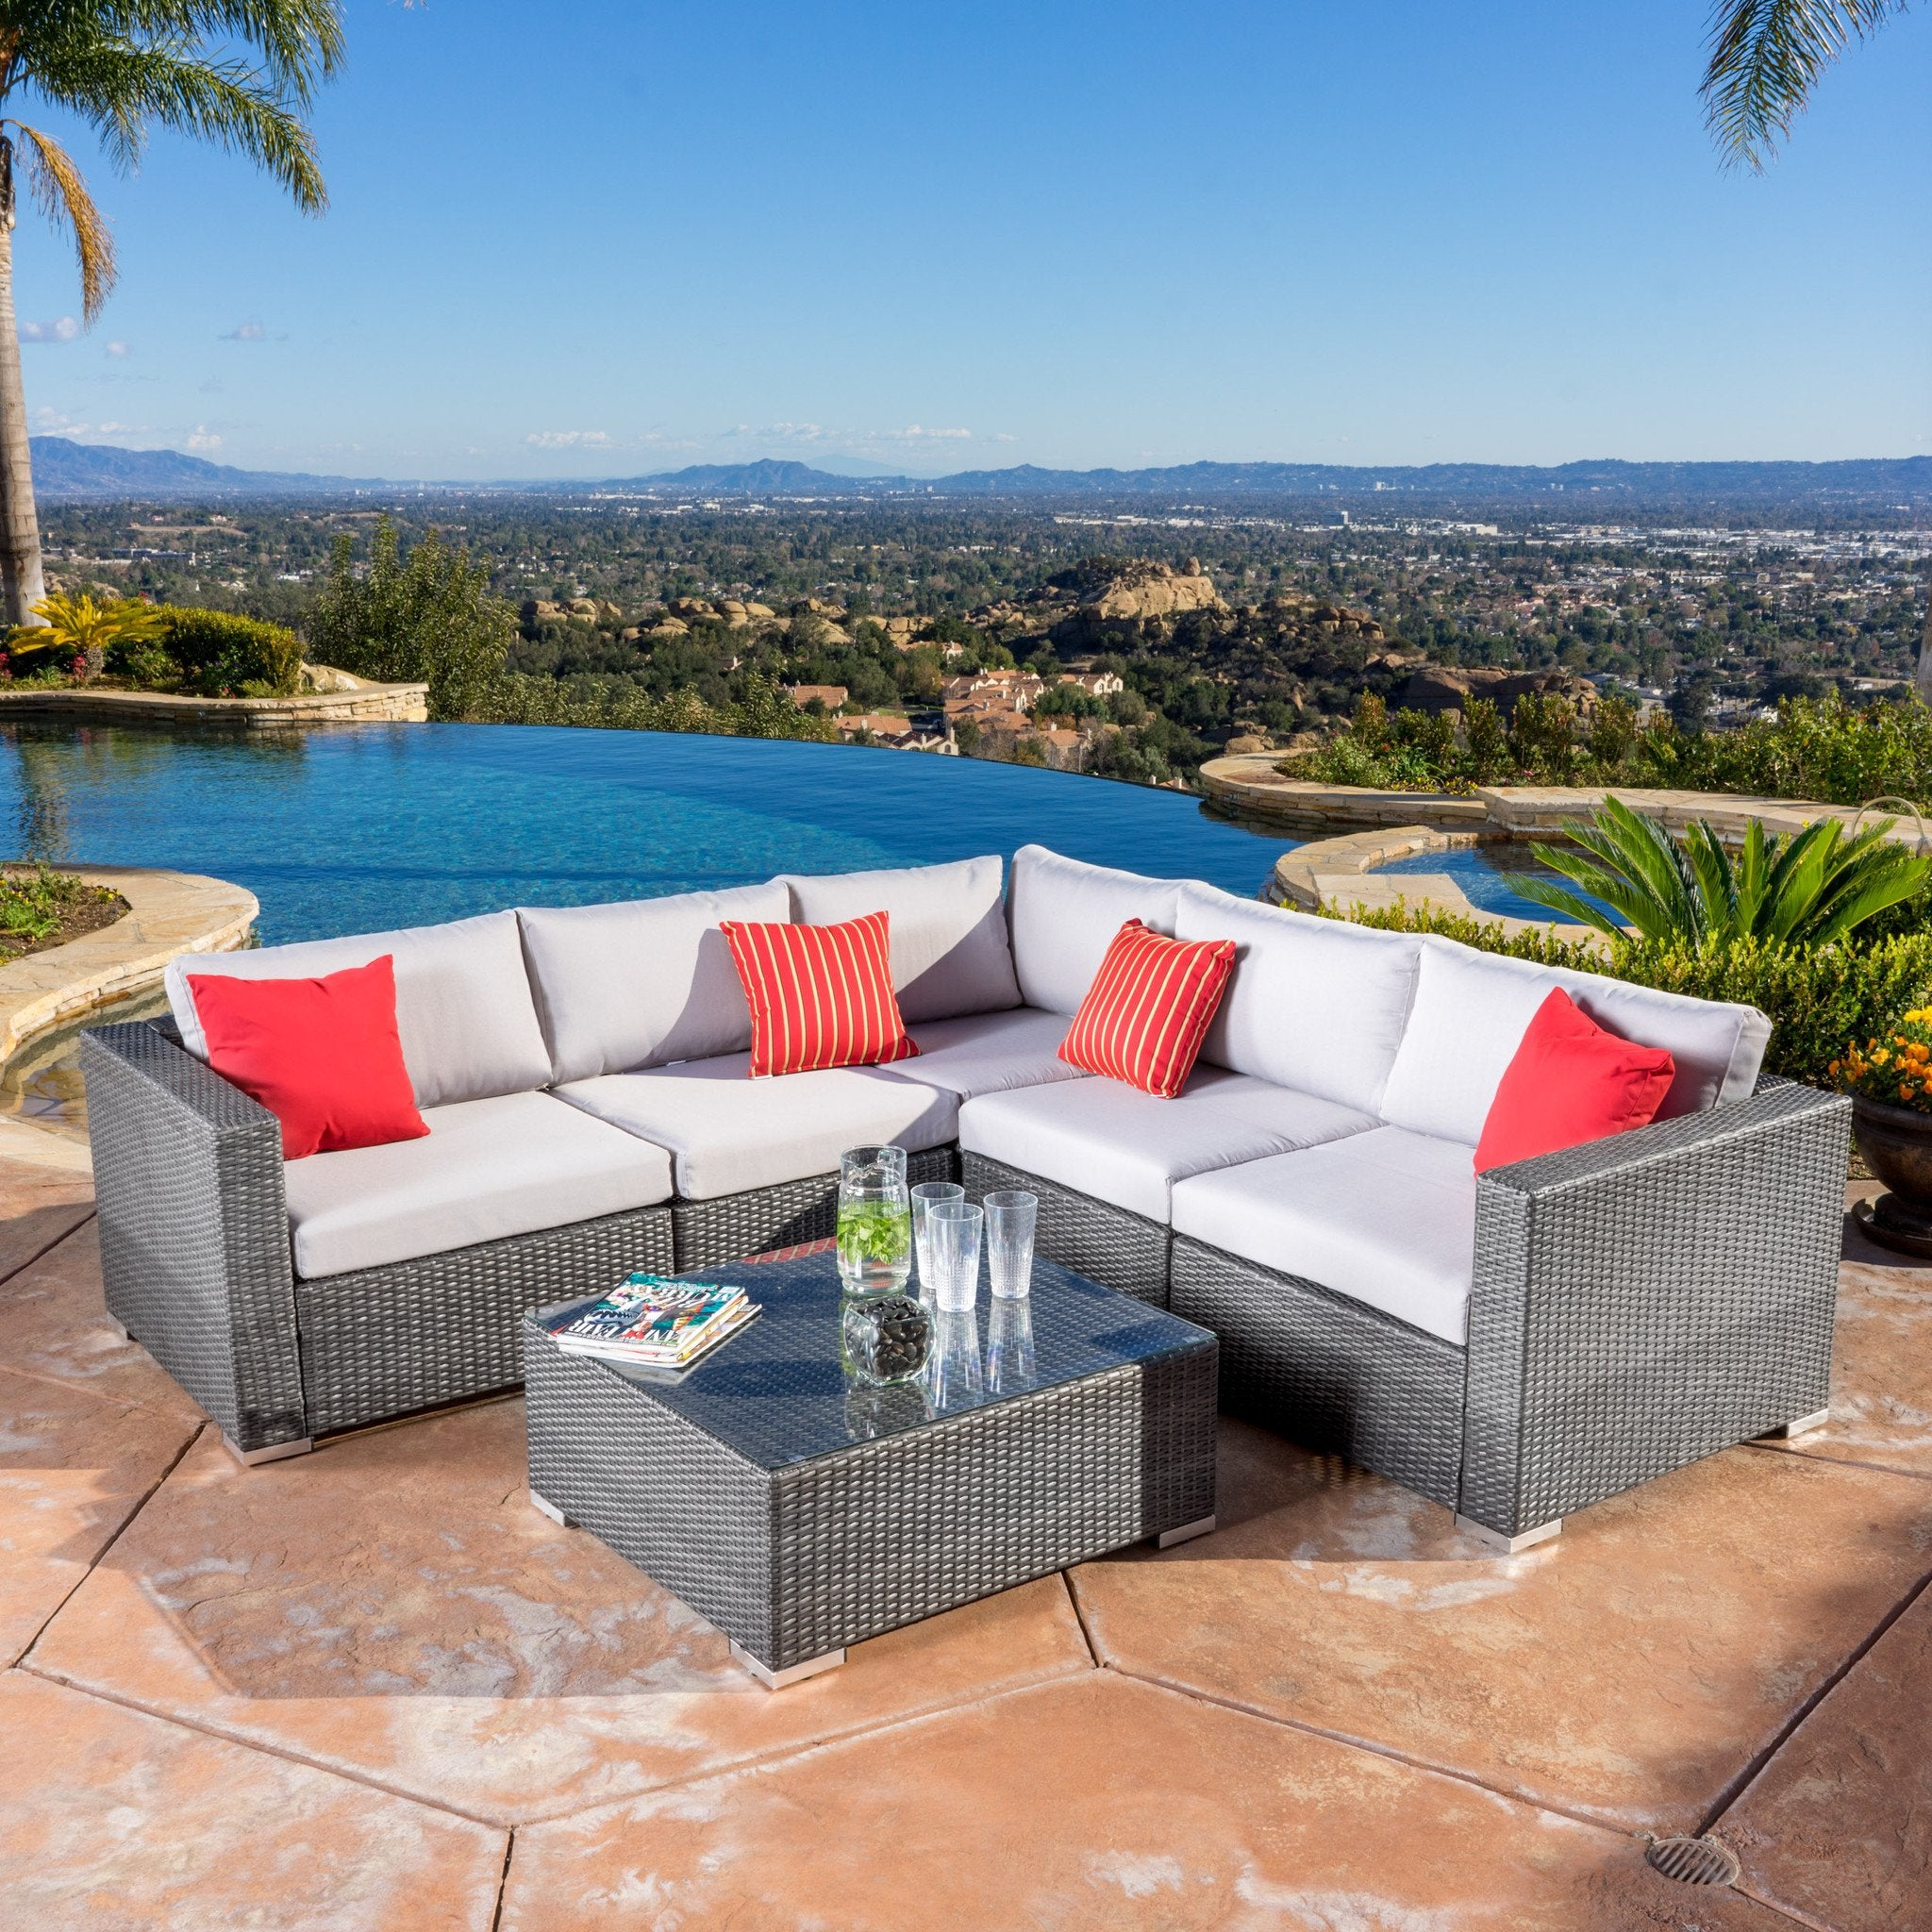 Outdoor Grey Wicker Seating Sectional Set Cushions foto